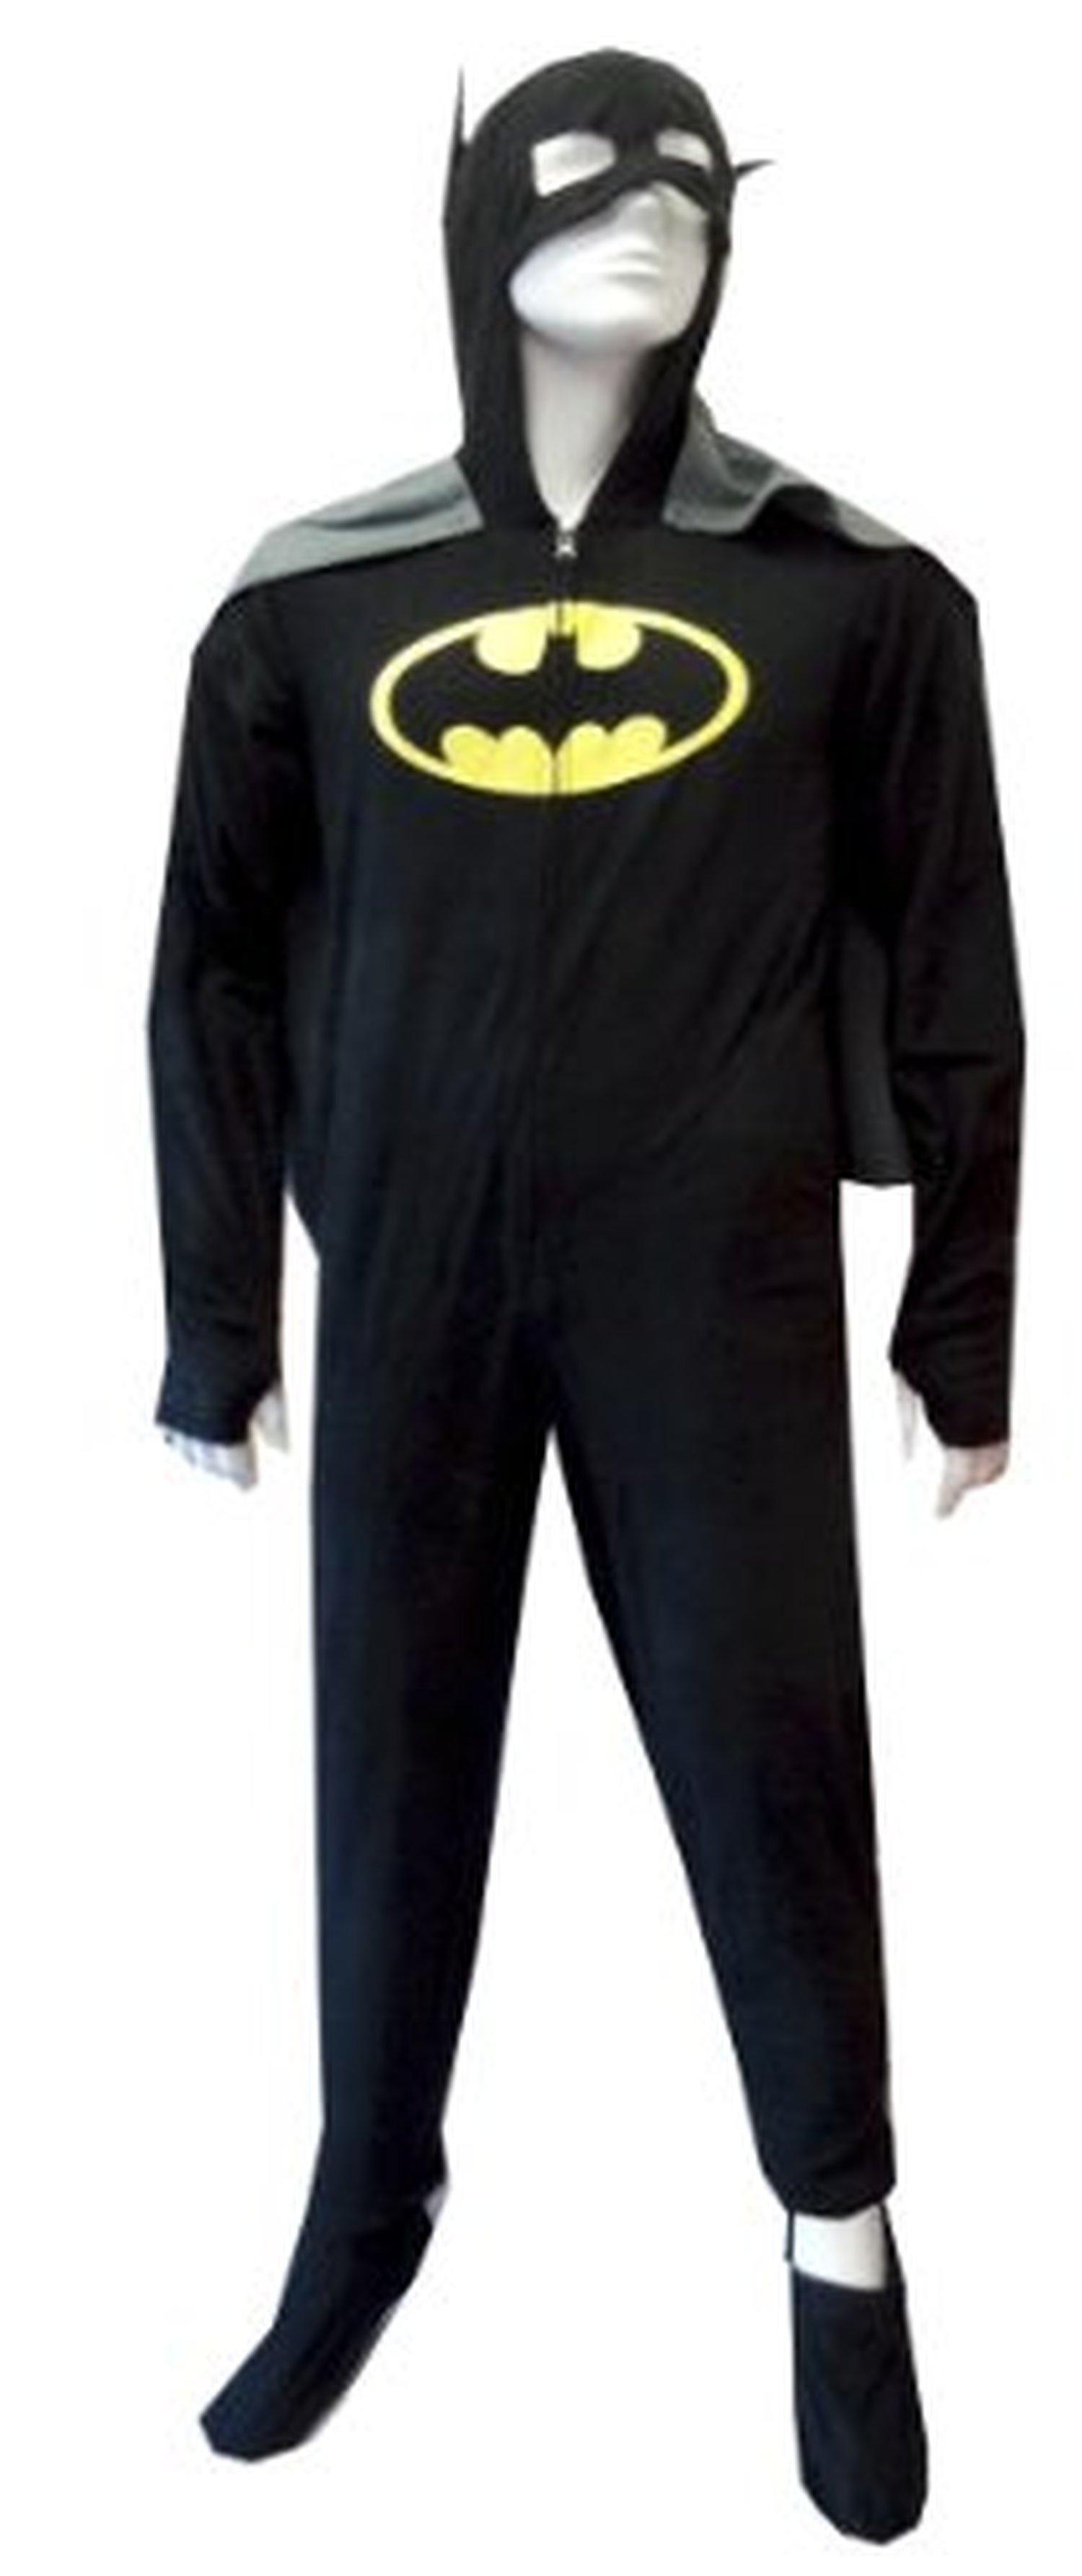 Batman BatGirl Hooded Fleece One Piece Footie Pajama with Cape for men  (Medium) - Brought to you by Avarsha.com d59d40d37